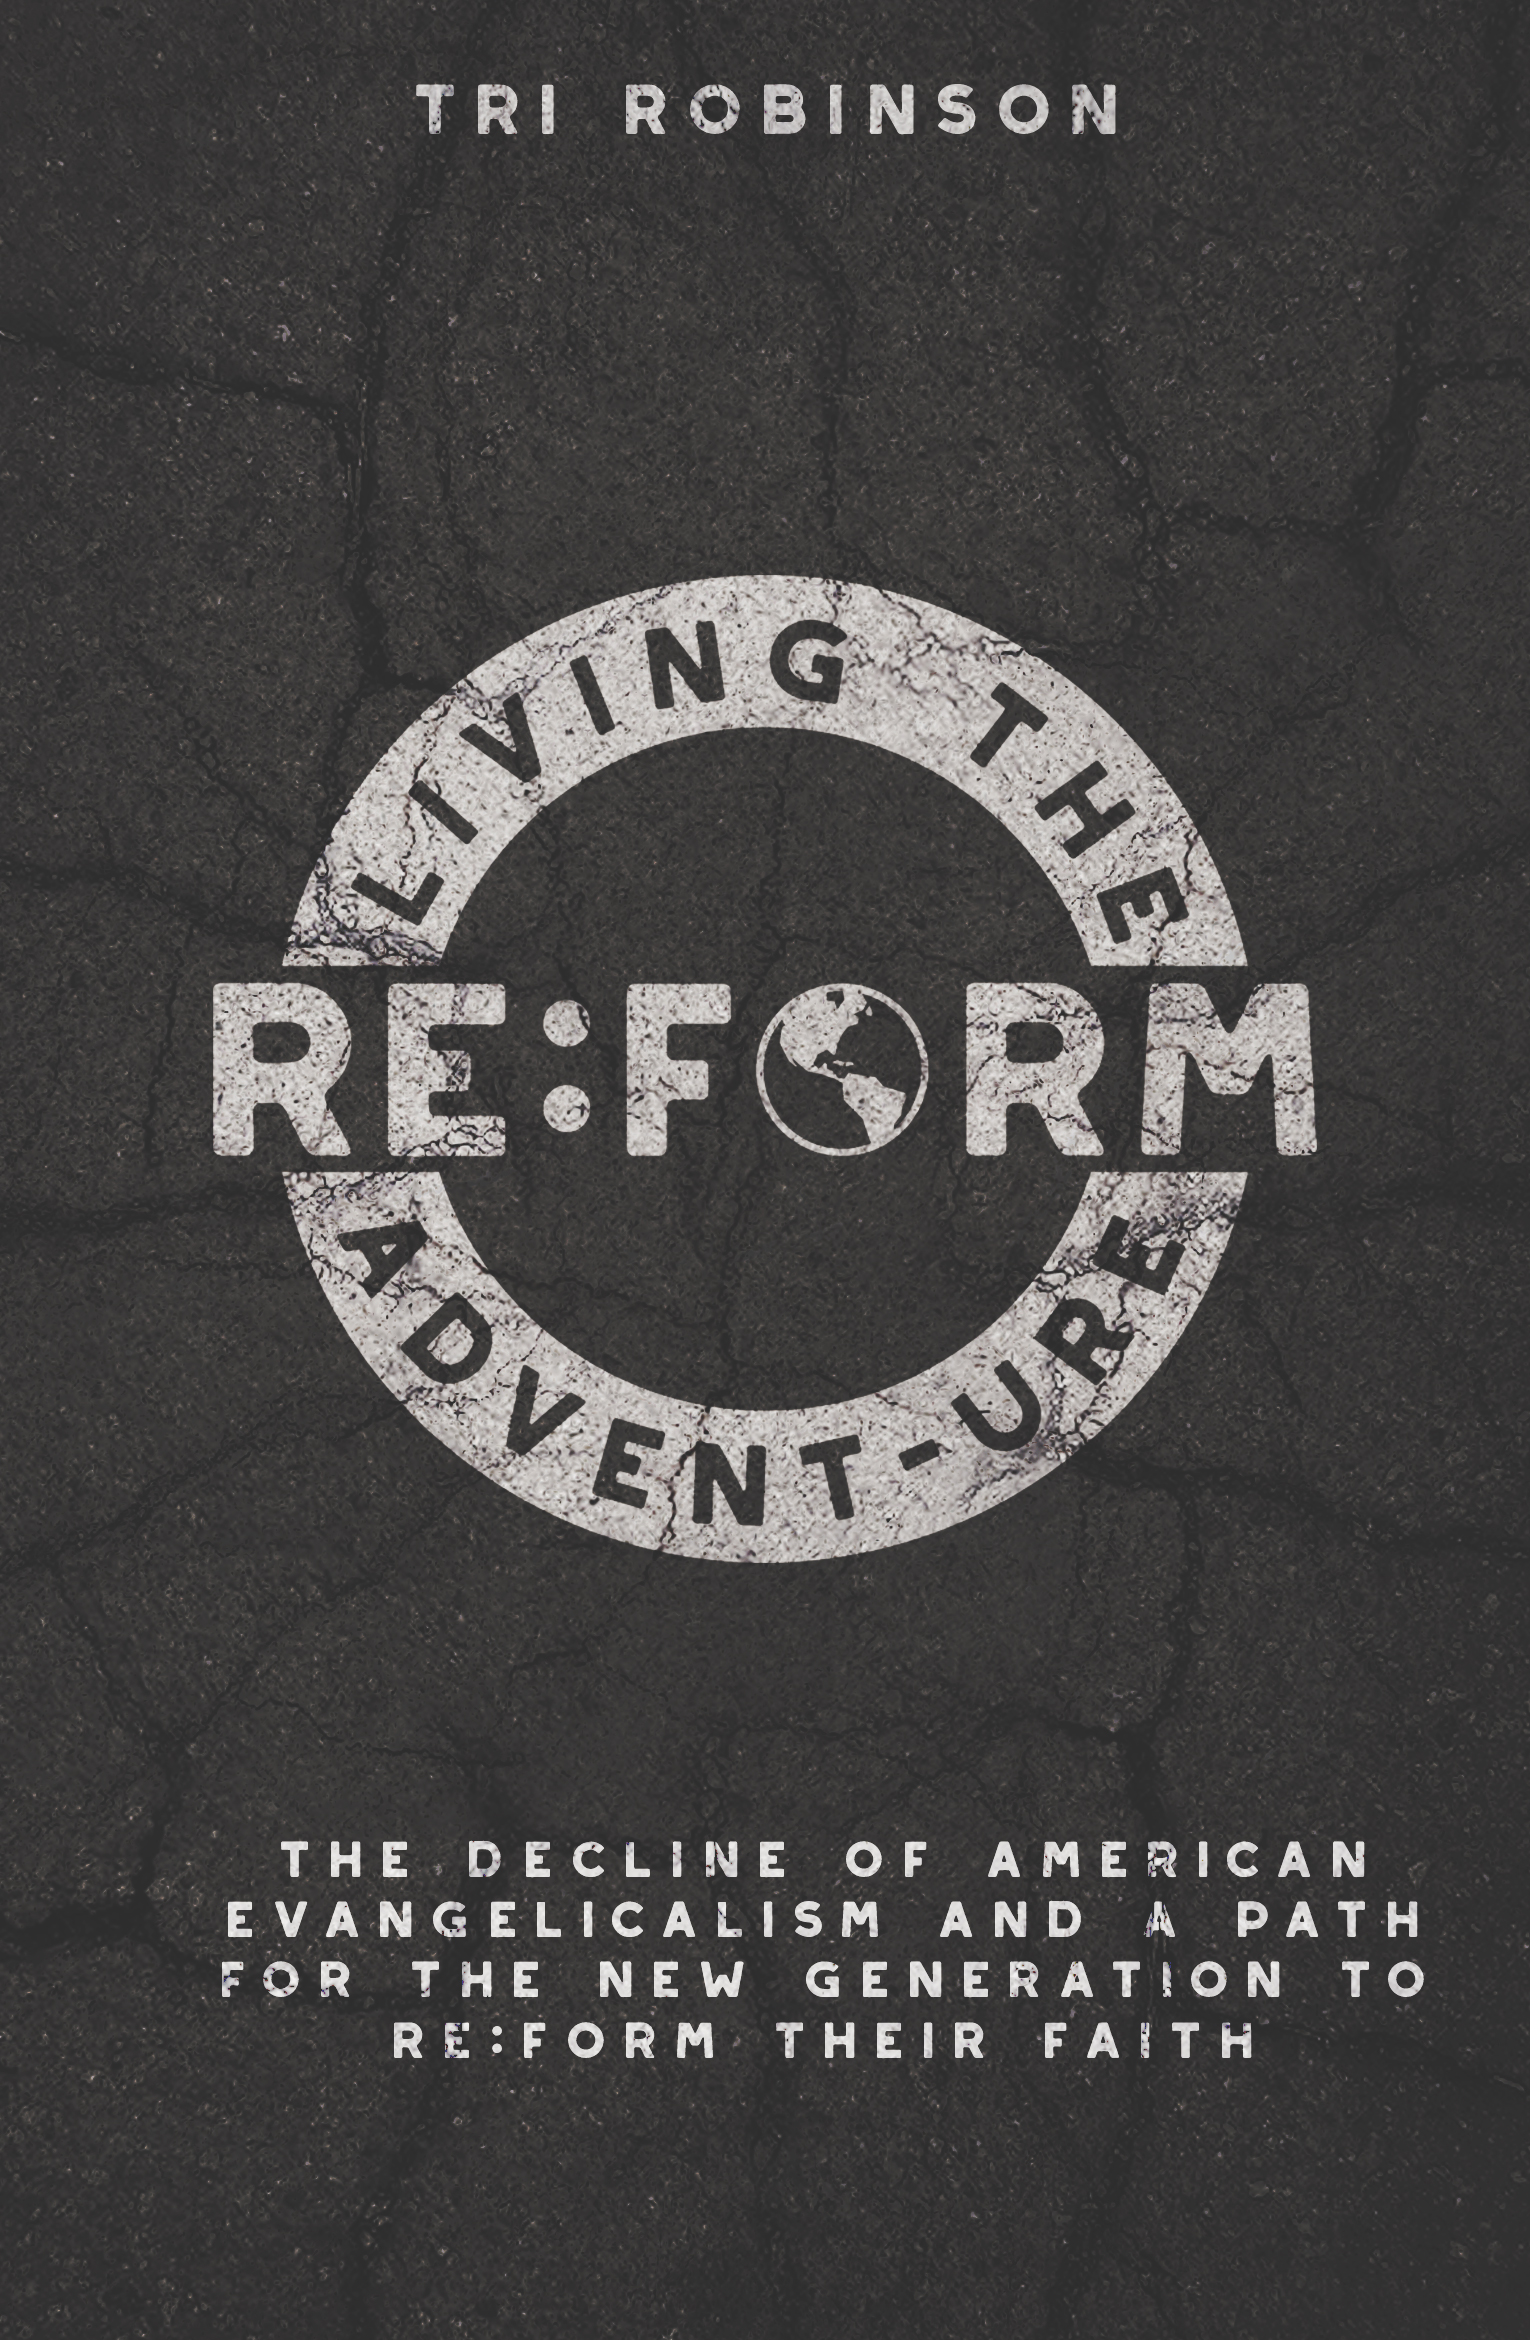 Reform: Living the Advent-ure